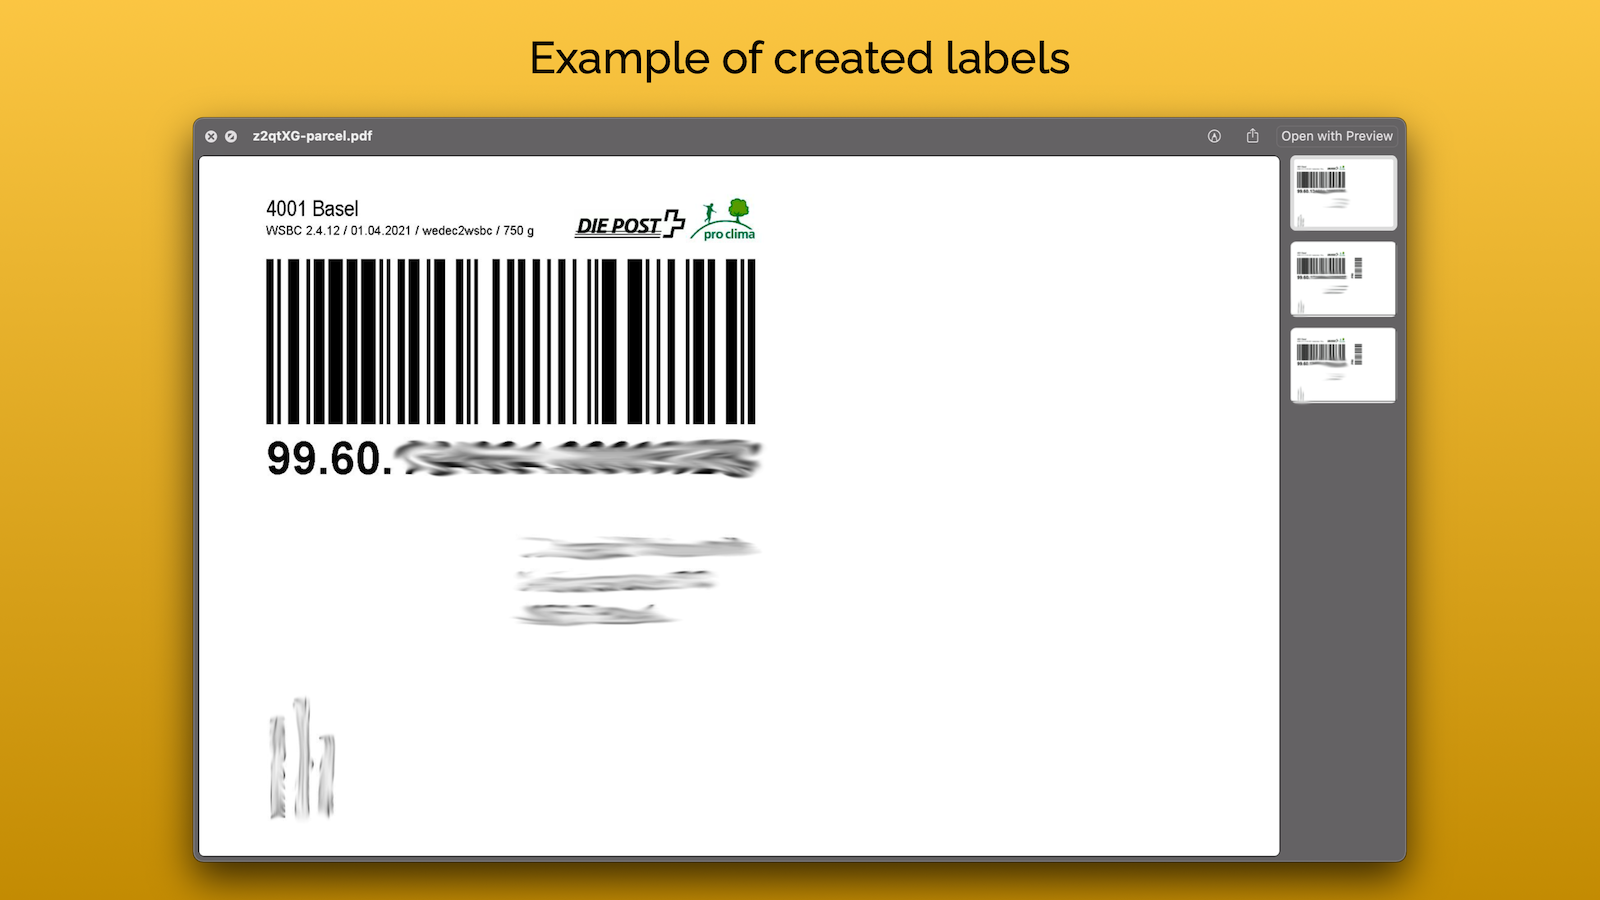 Labels are ready to print. This is how parcel labels look.